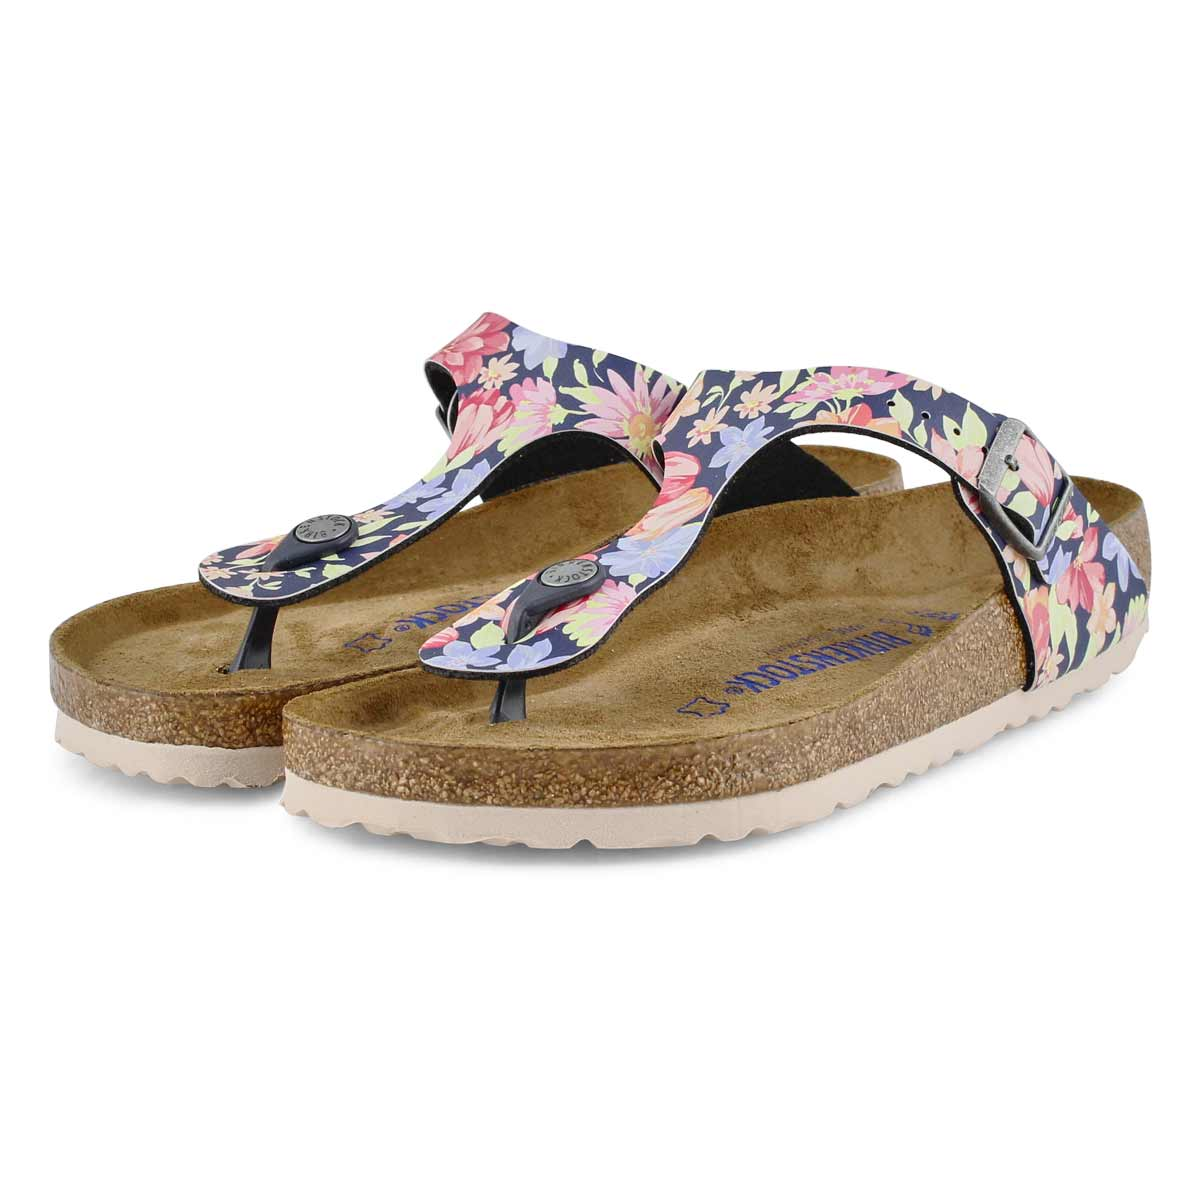 Lds Gizeh Soft BF flower/nvy thong sndl